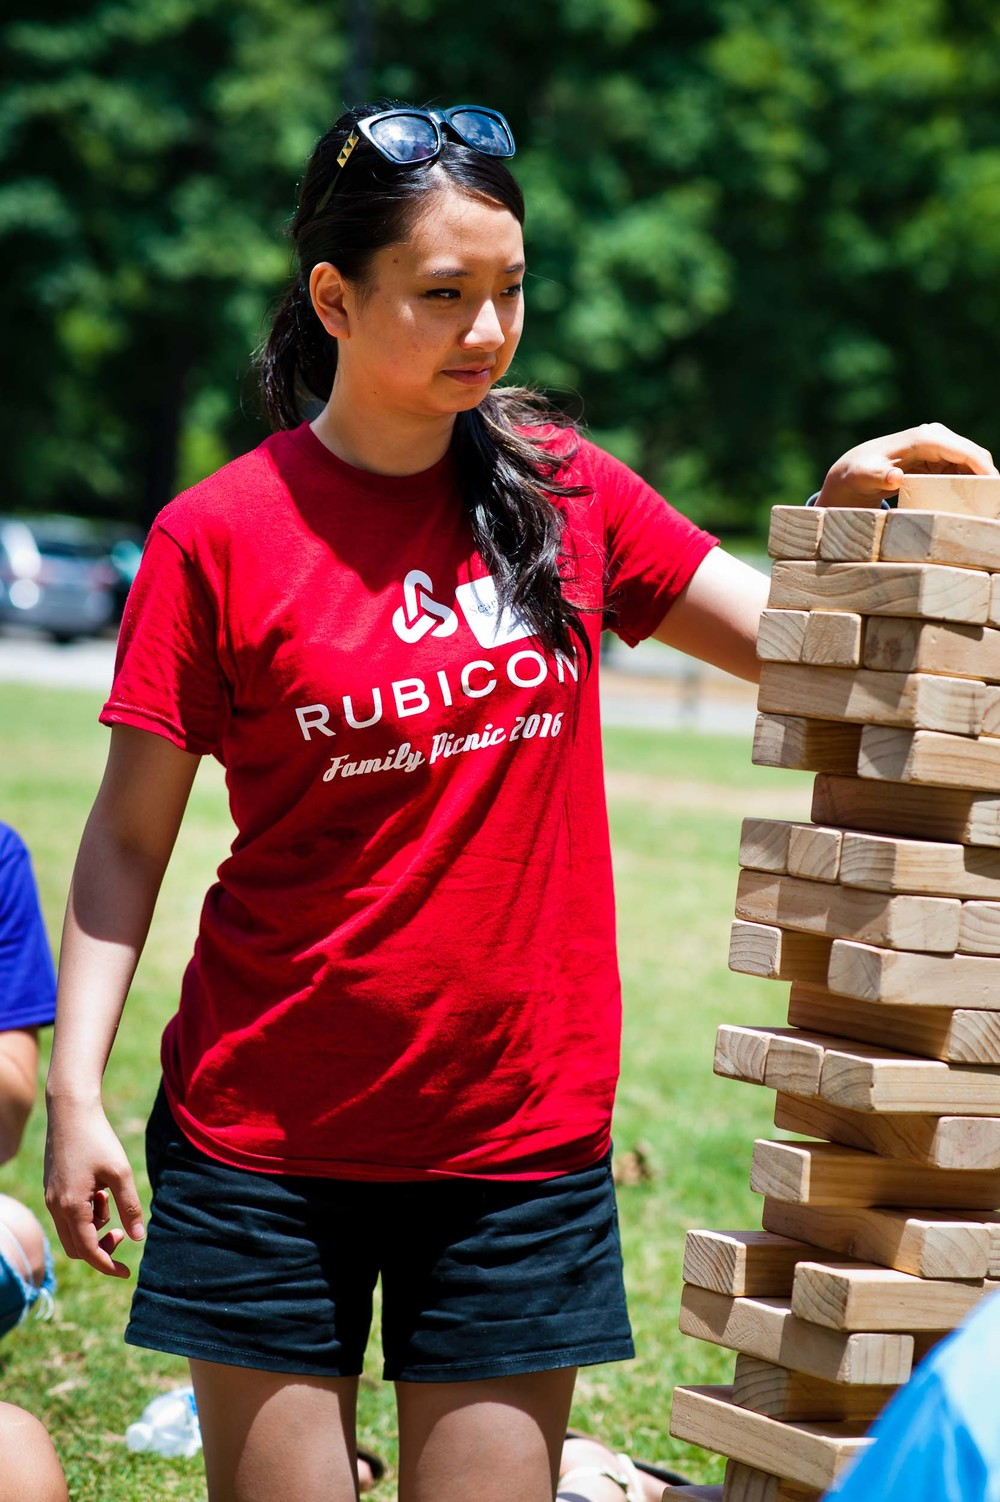 Rubicon Global BBQ (Web Ready)_065.JPG